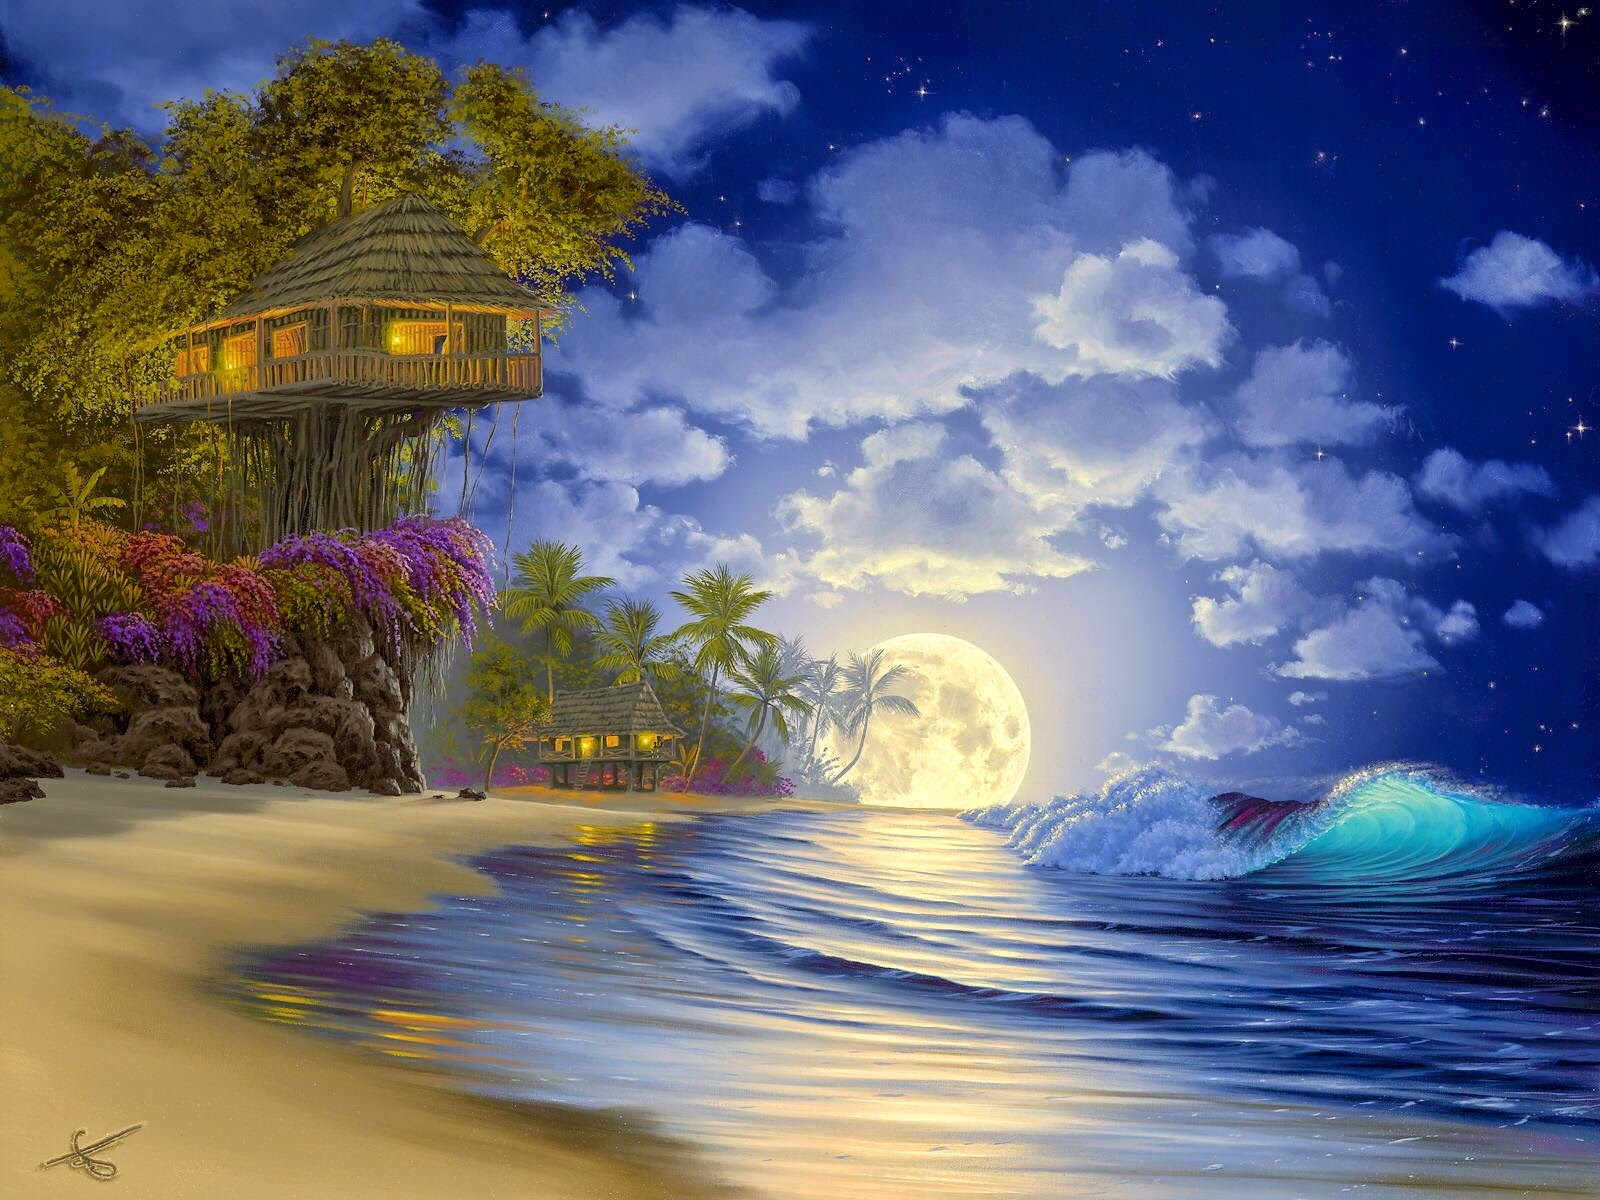 Tree-house-near-sea-Full-moon-image-peaceful-night-beauty-1600x1200.jpeg